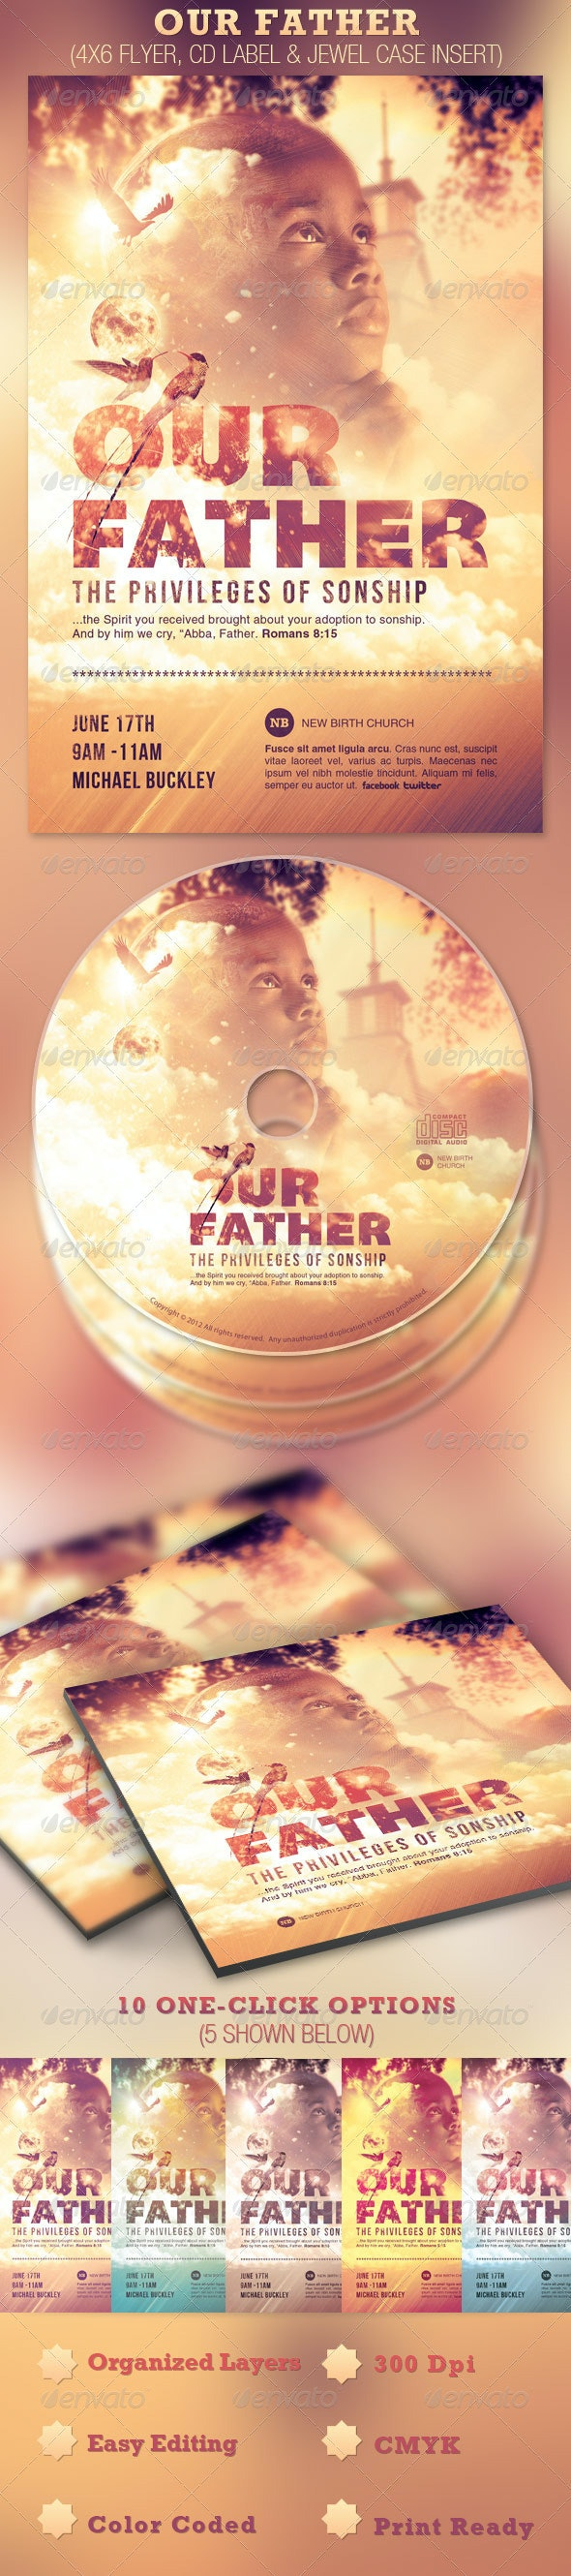 Our Father Flyer and CD Template - Church Flyers